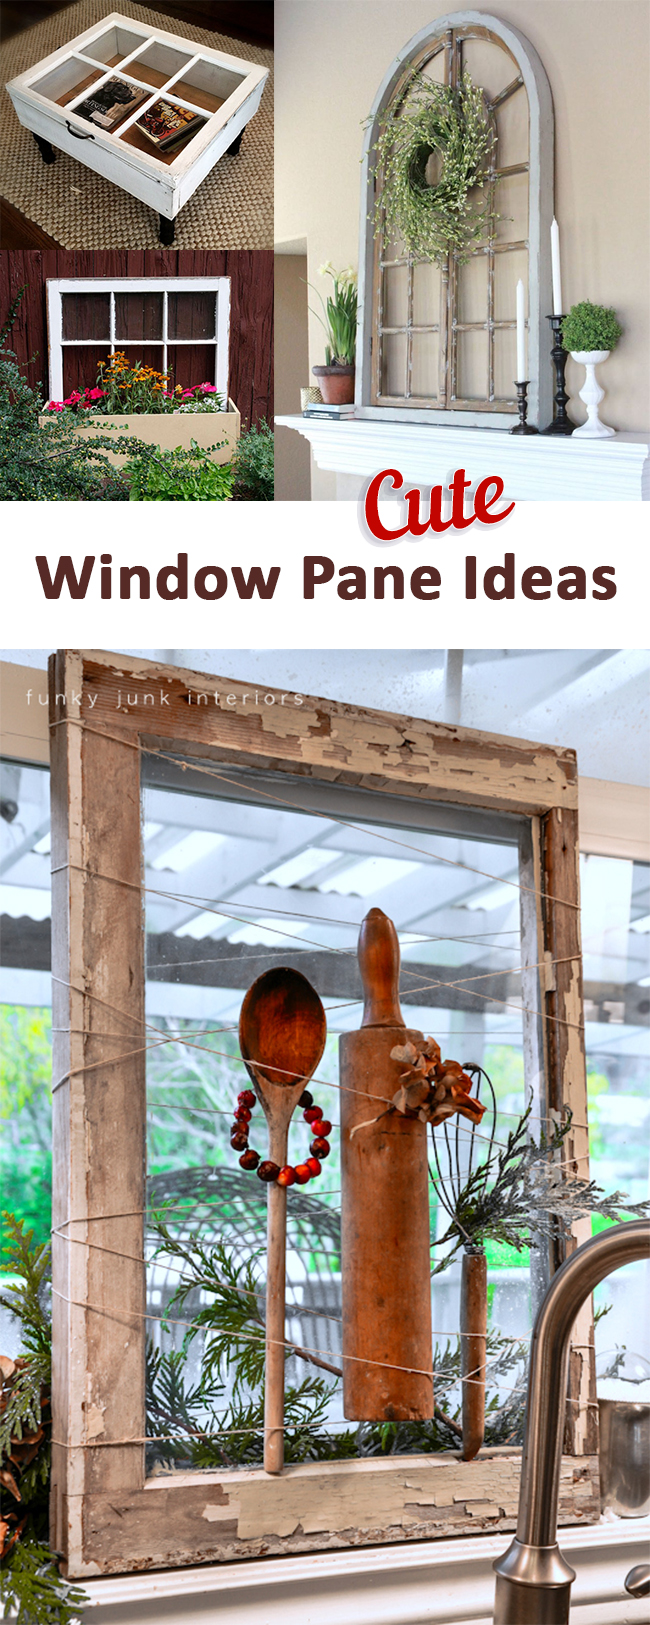 9 Adorable Window Pane Repurpose Projects